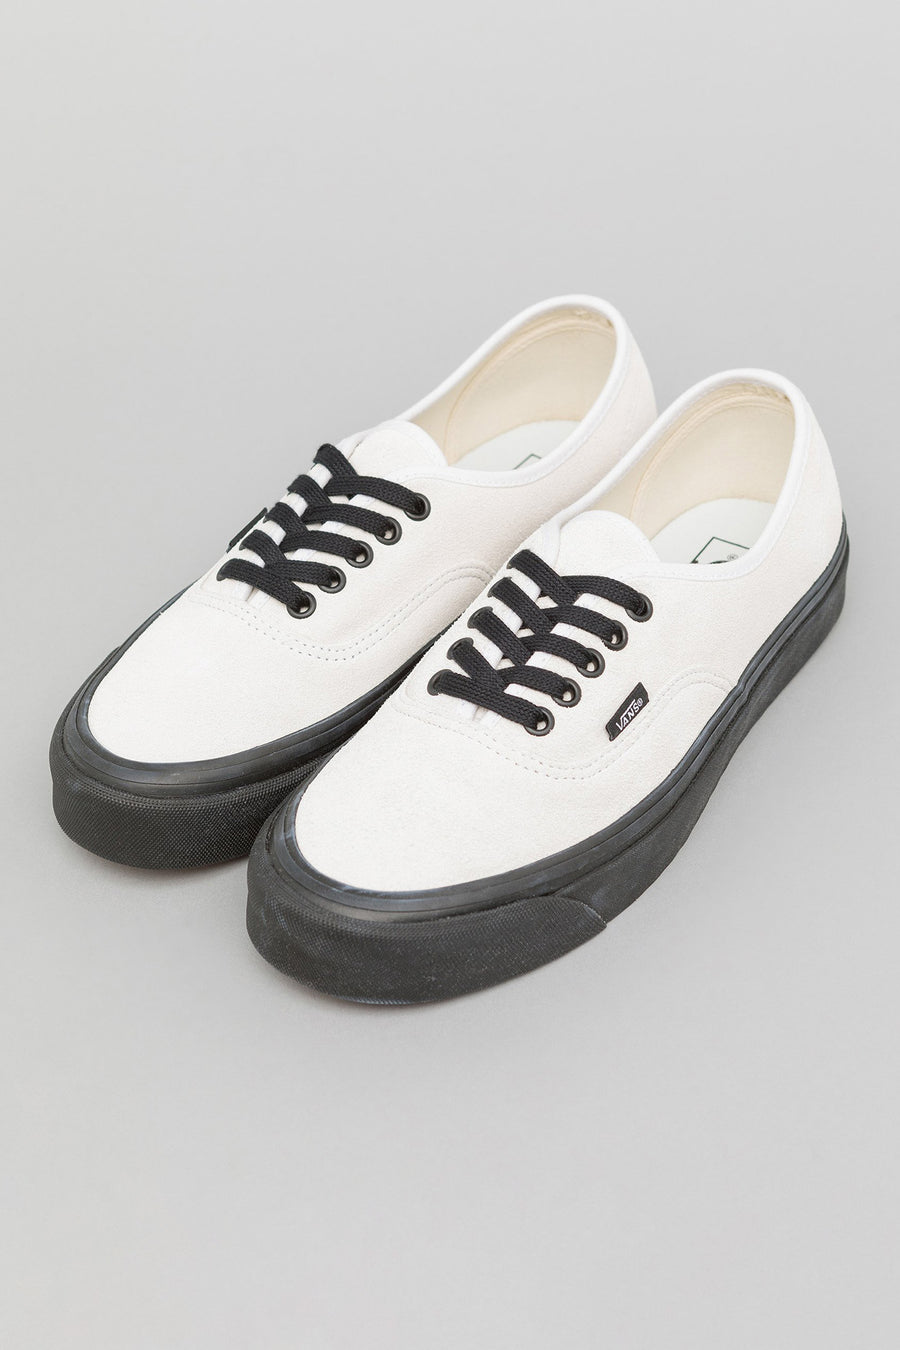 Vans Authentic 44 DX Anaheim Factory in OG White - Notre